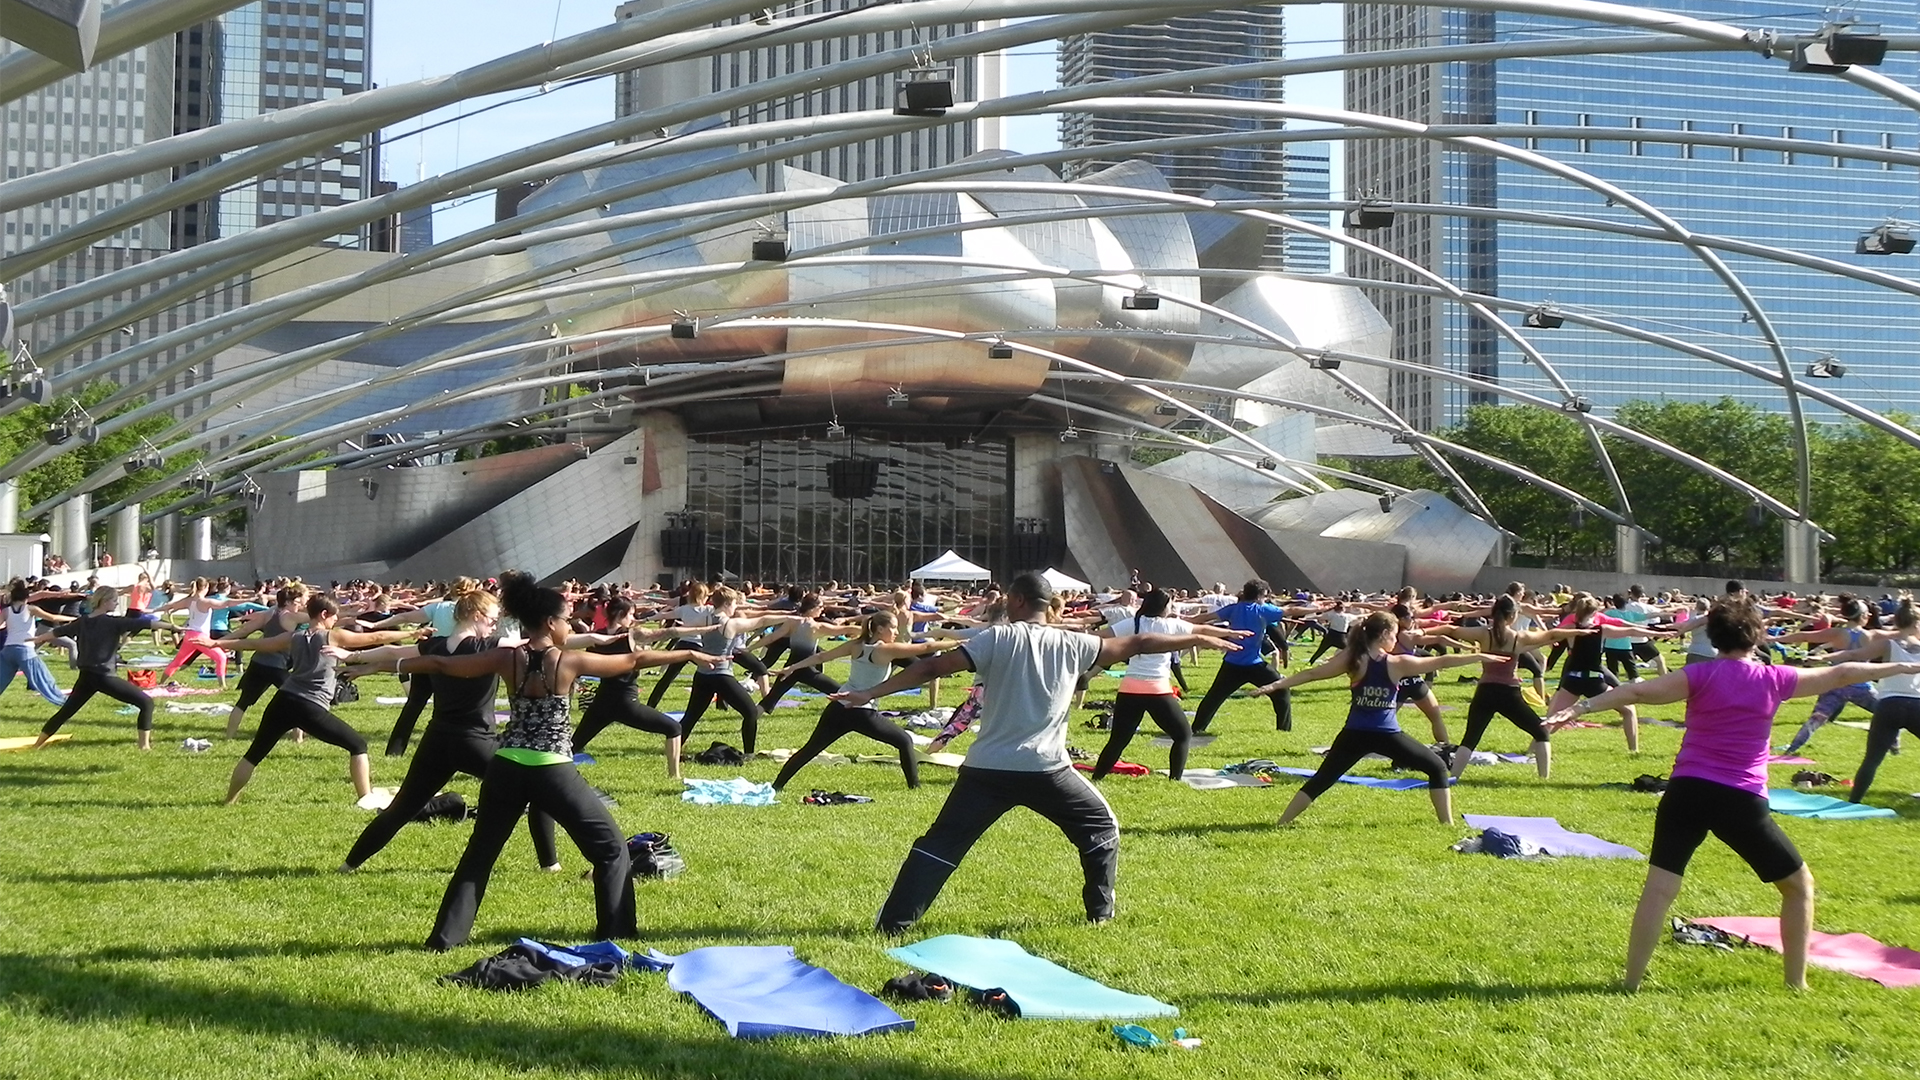 An image of people practicing zumba in Millennium Park in Chicago